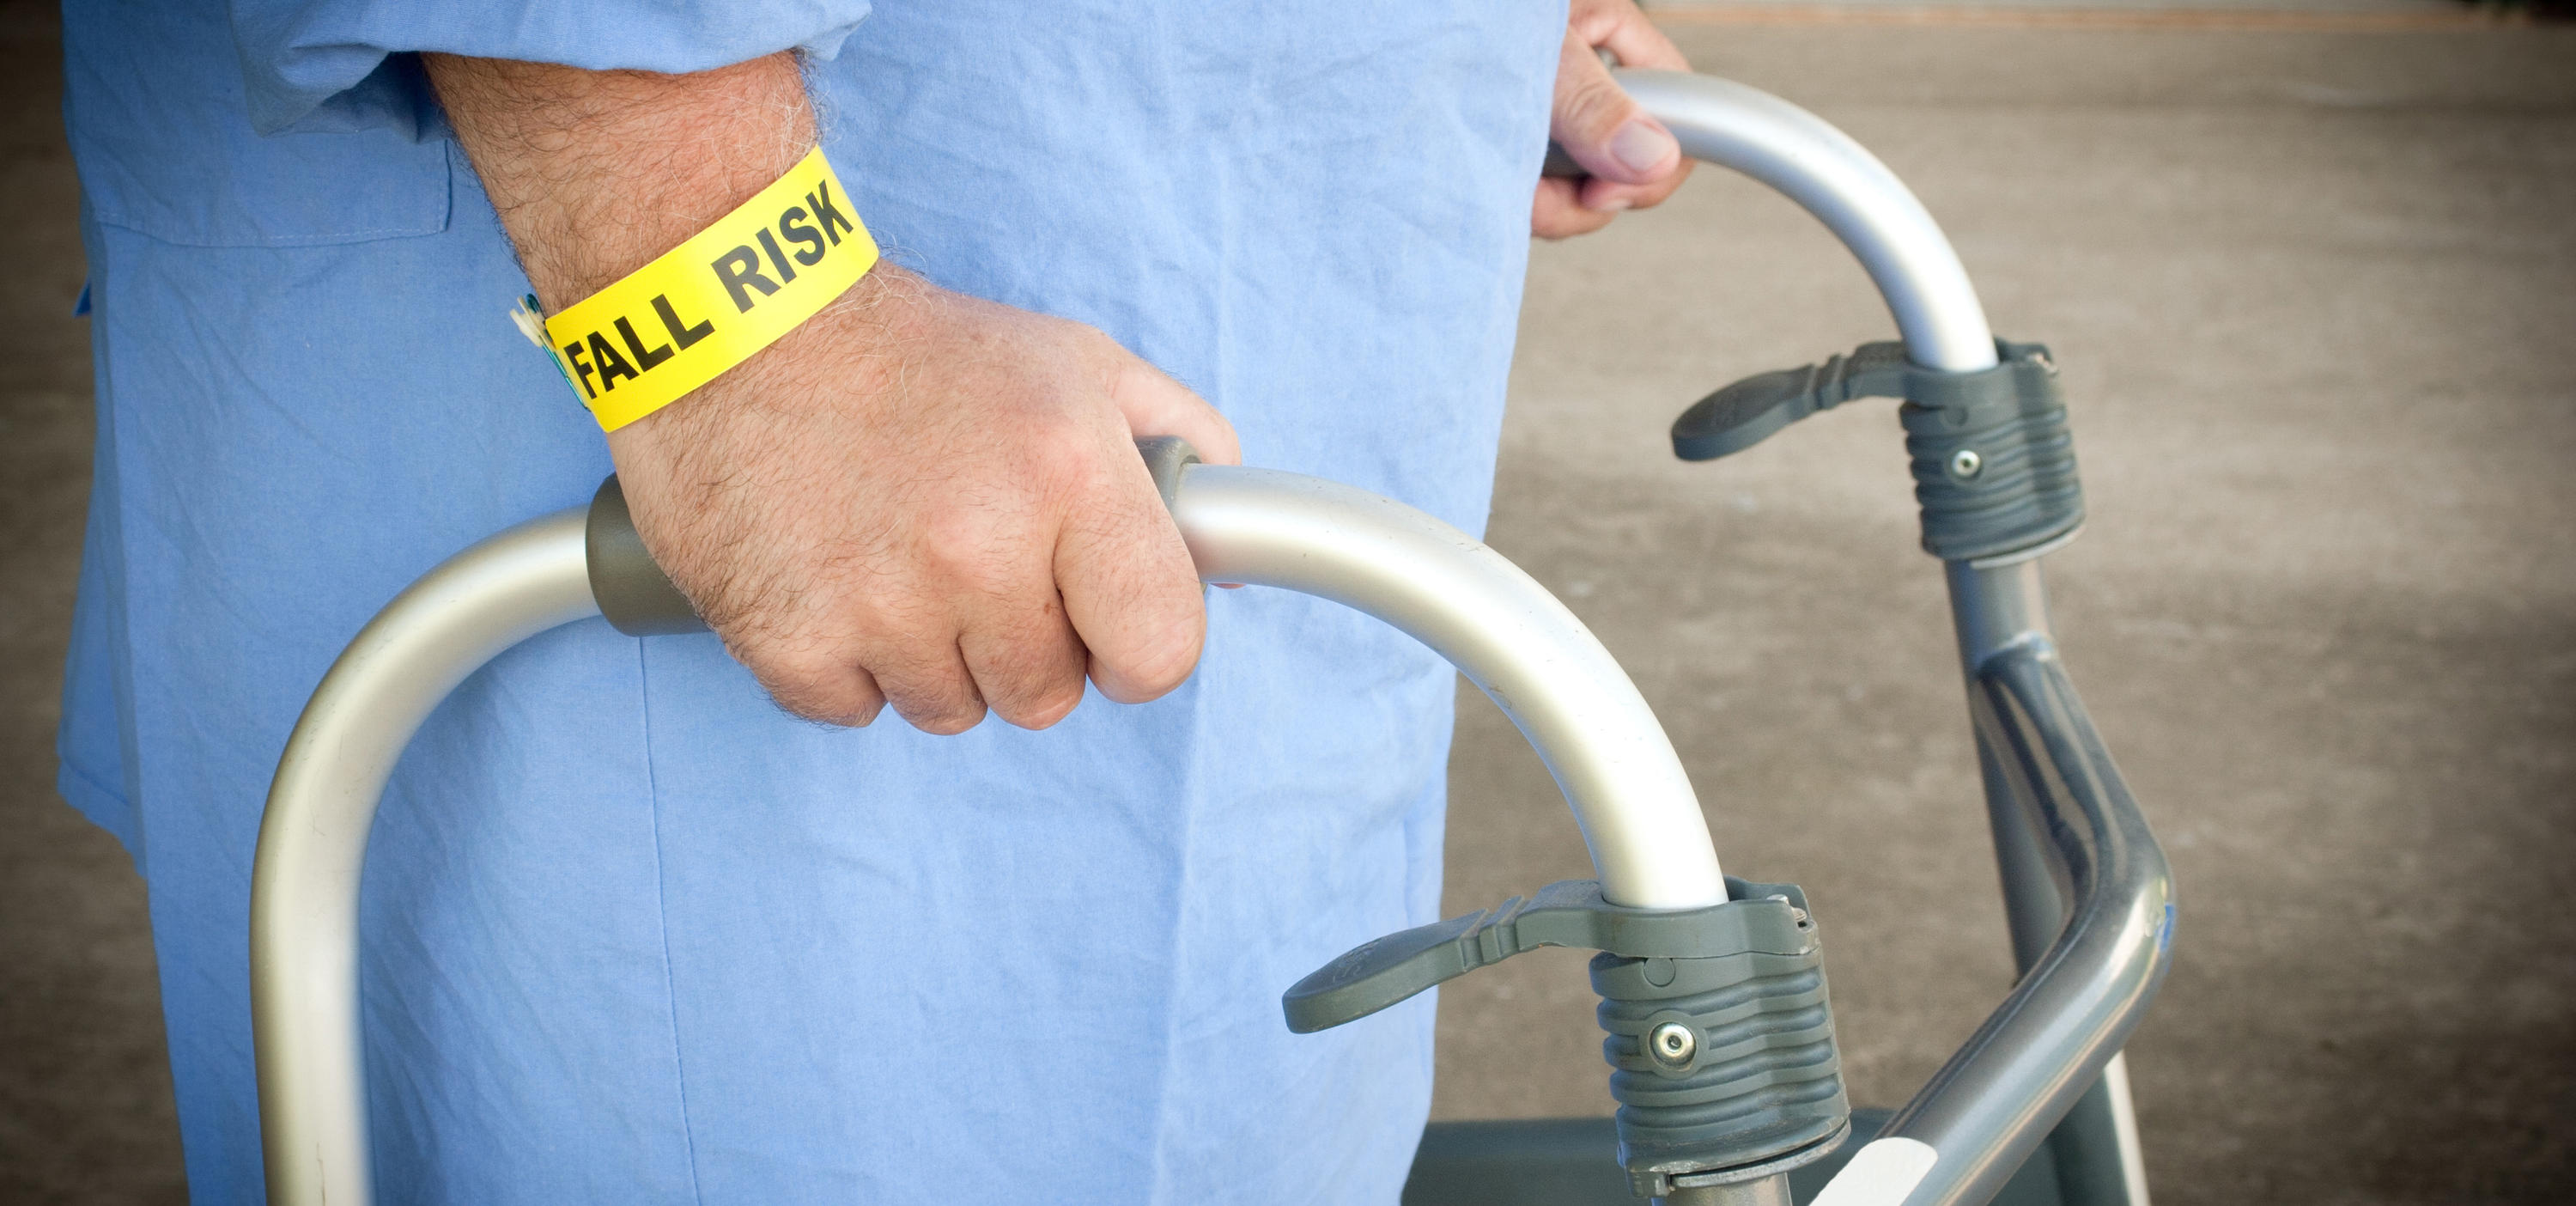 A hospital patient wearing a fall risk bracelet and using a walker.